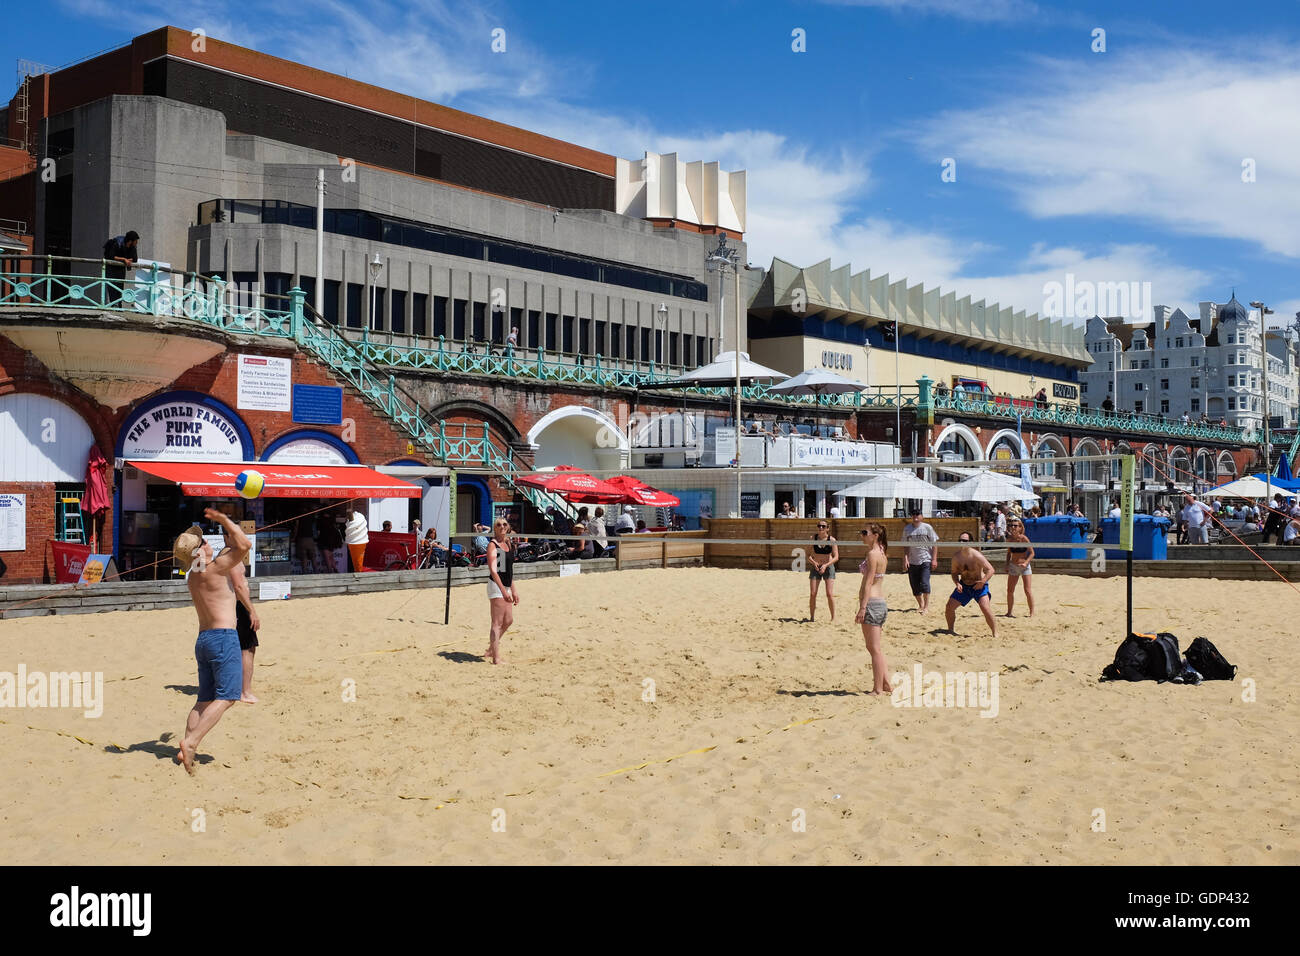 Les gens à jouer au volleyball de plage à Brighton, Angleterre. Photo Stock